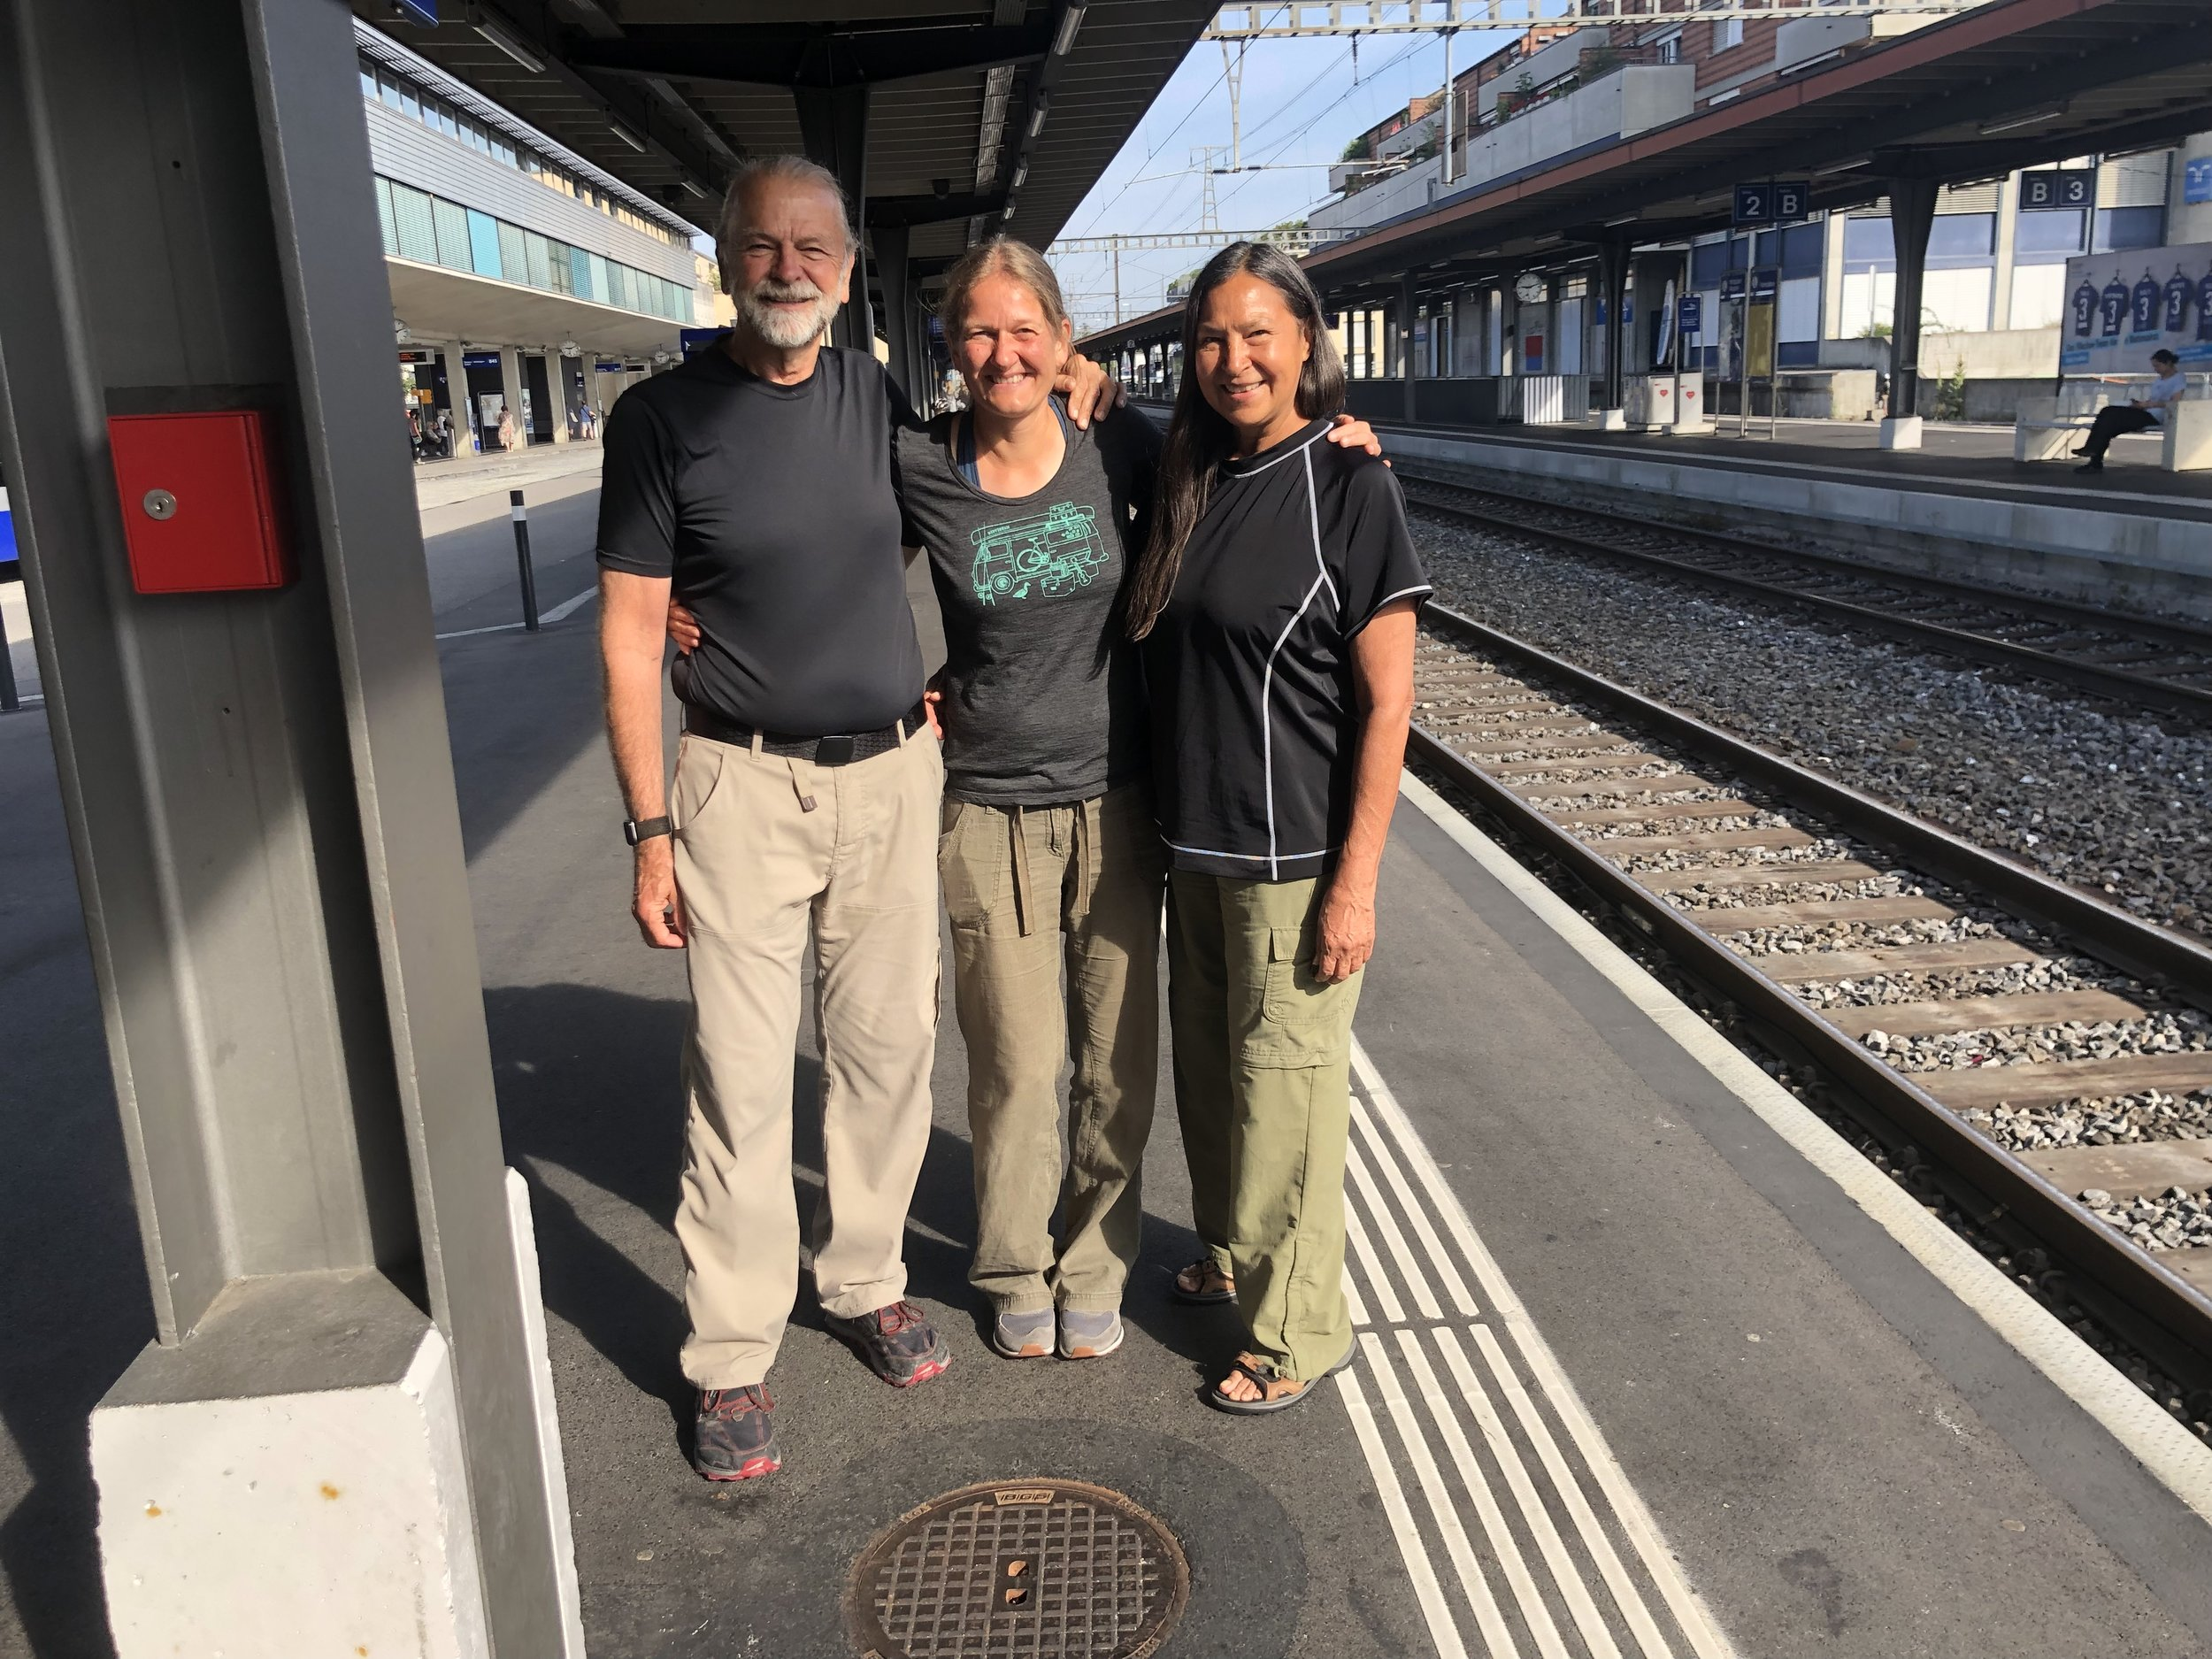 My friend Ines (trail name Oats) who I met on the Pacific Crest Trail. Great to see her during our brief visit to Switzerland.